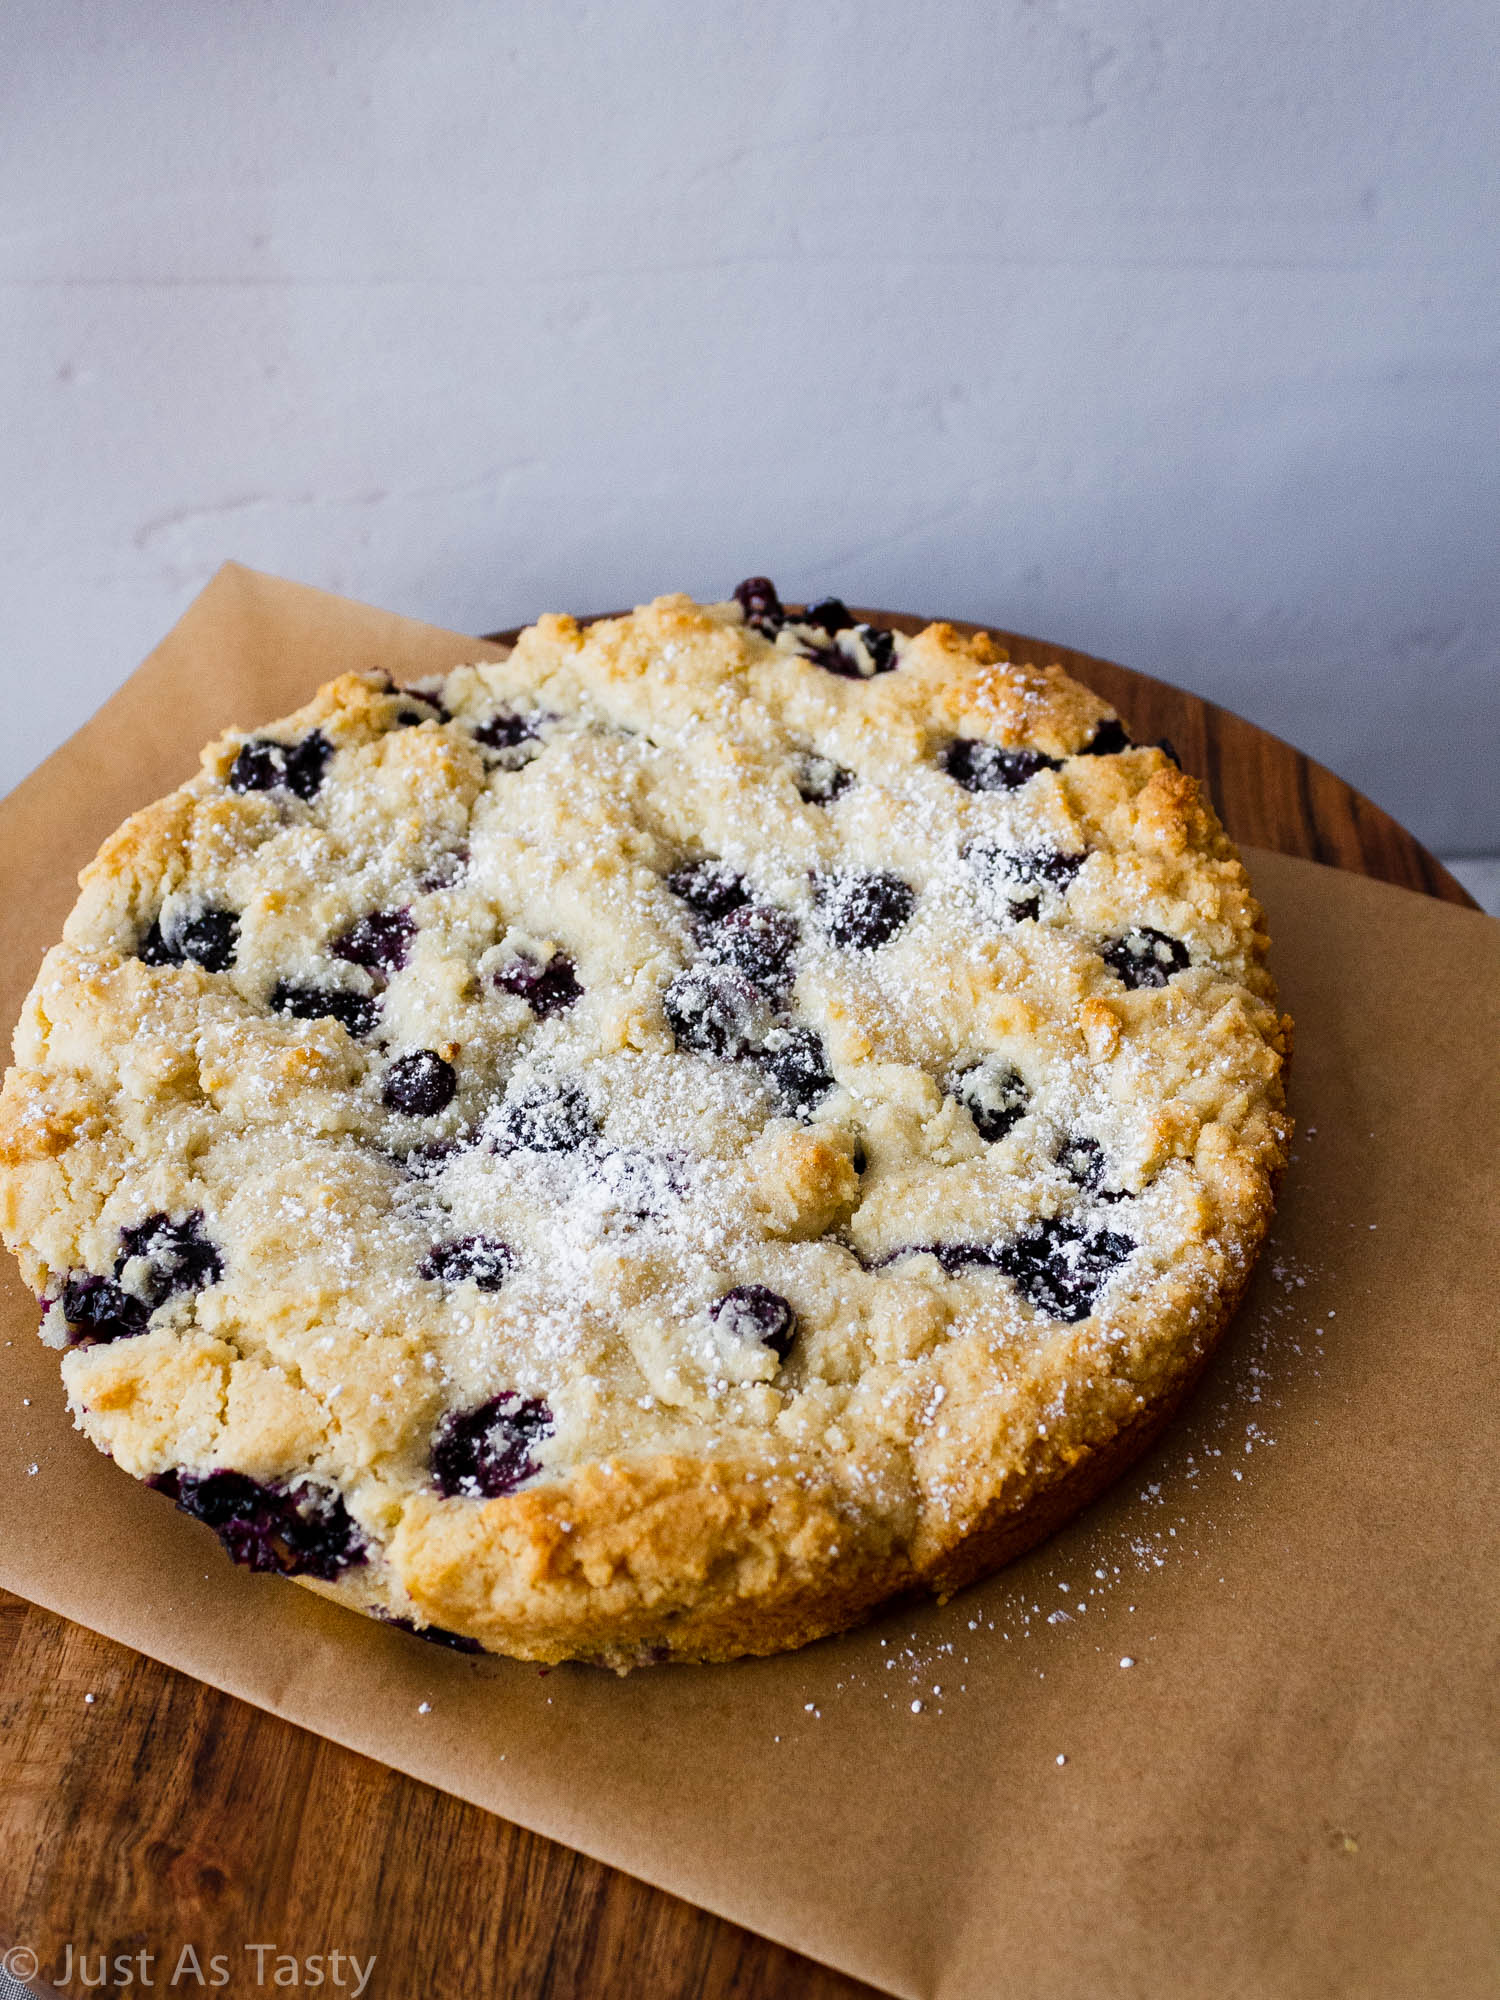 Gluten free blueberry cake topped with powdered sugar.